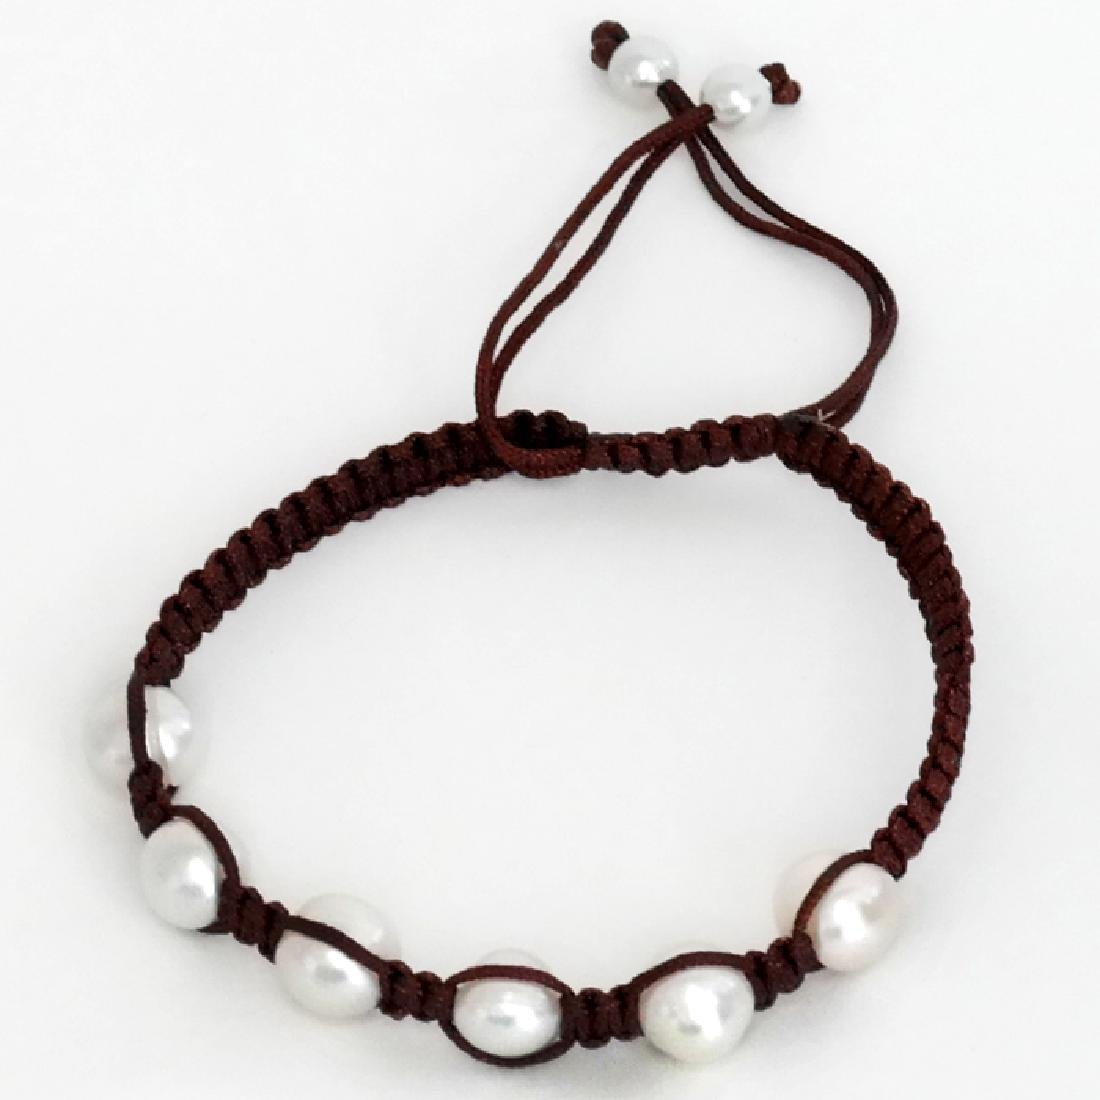 Genuine white 9 mm pearls with bordo color rope